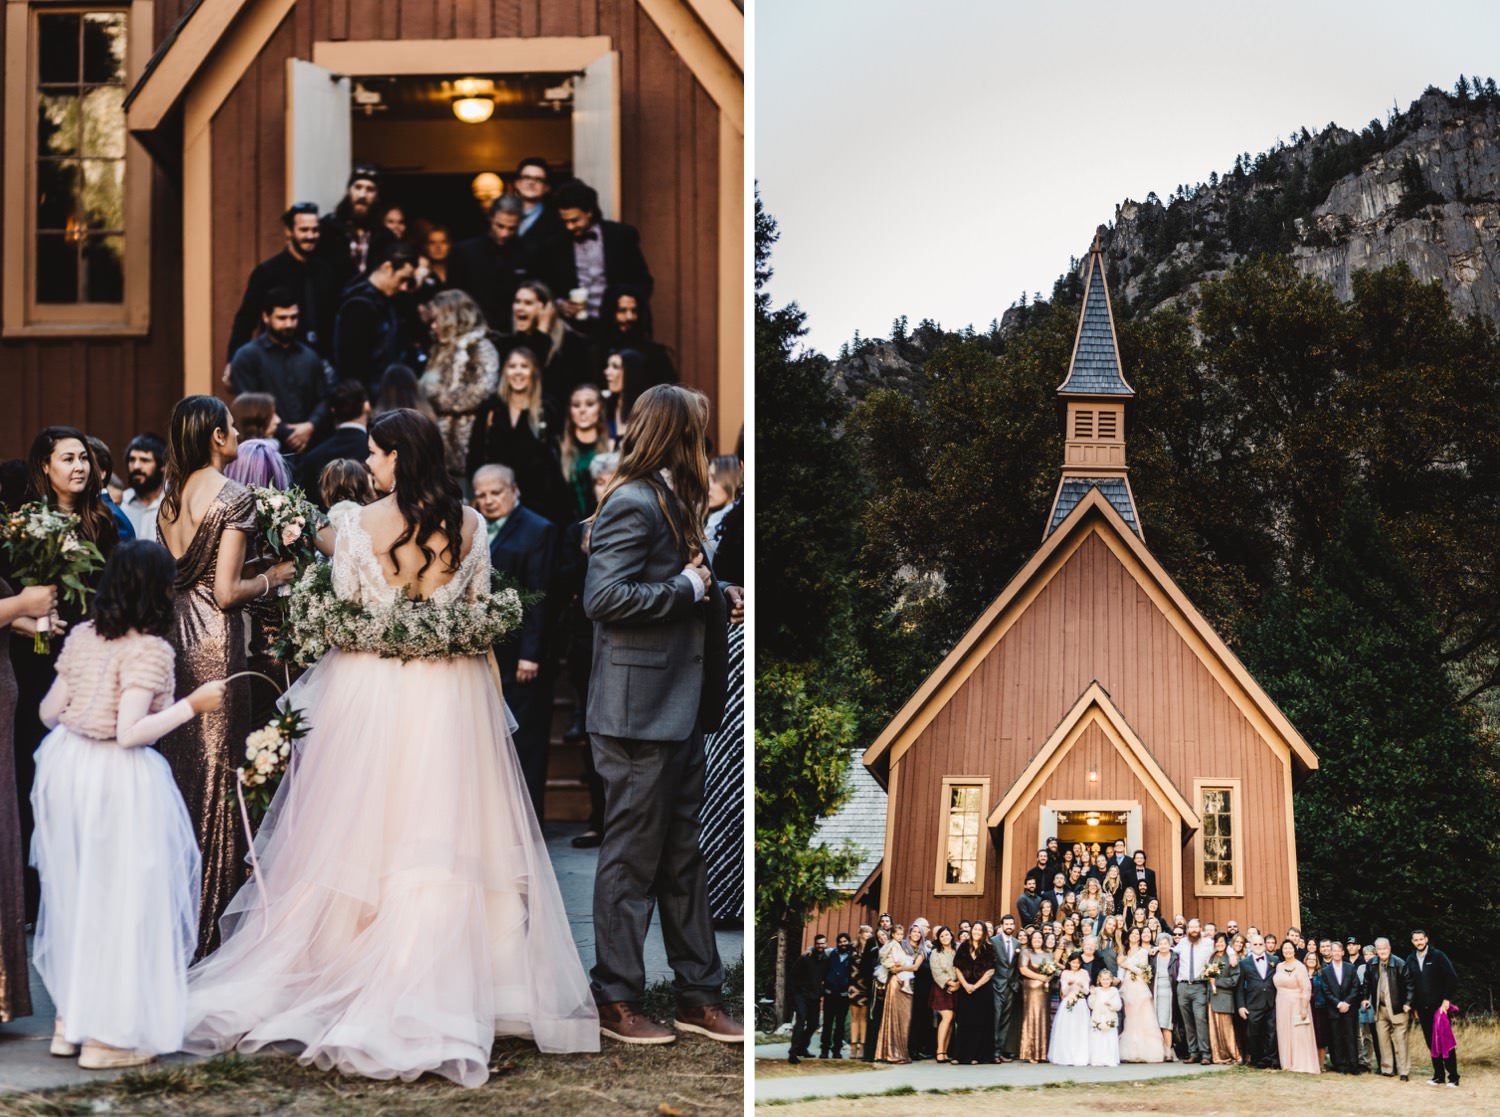 32_alex+matt-wedding-225_alex+matt-wedding-227_park_national_elopement_wedding_yosemite_intimate.jpg